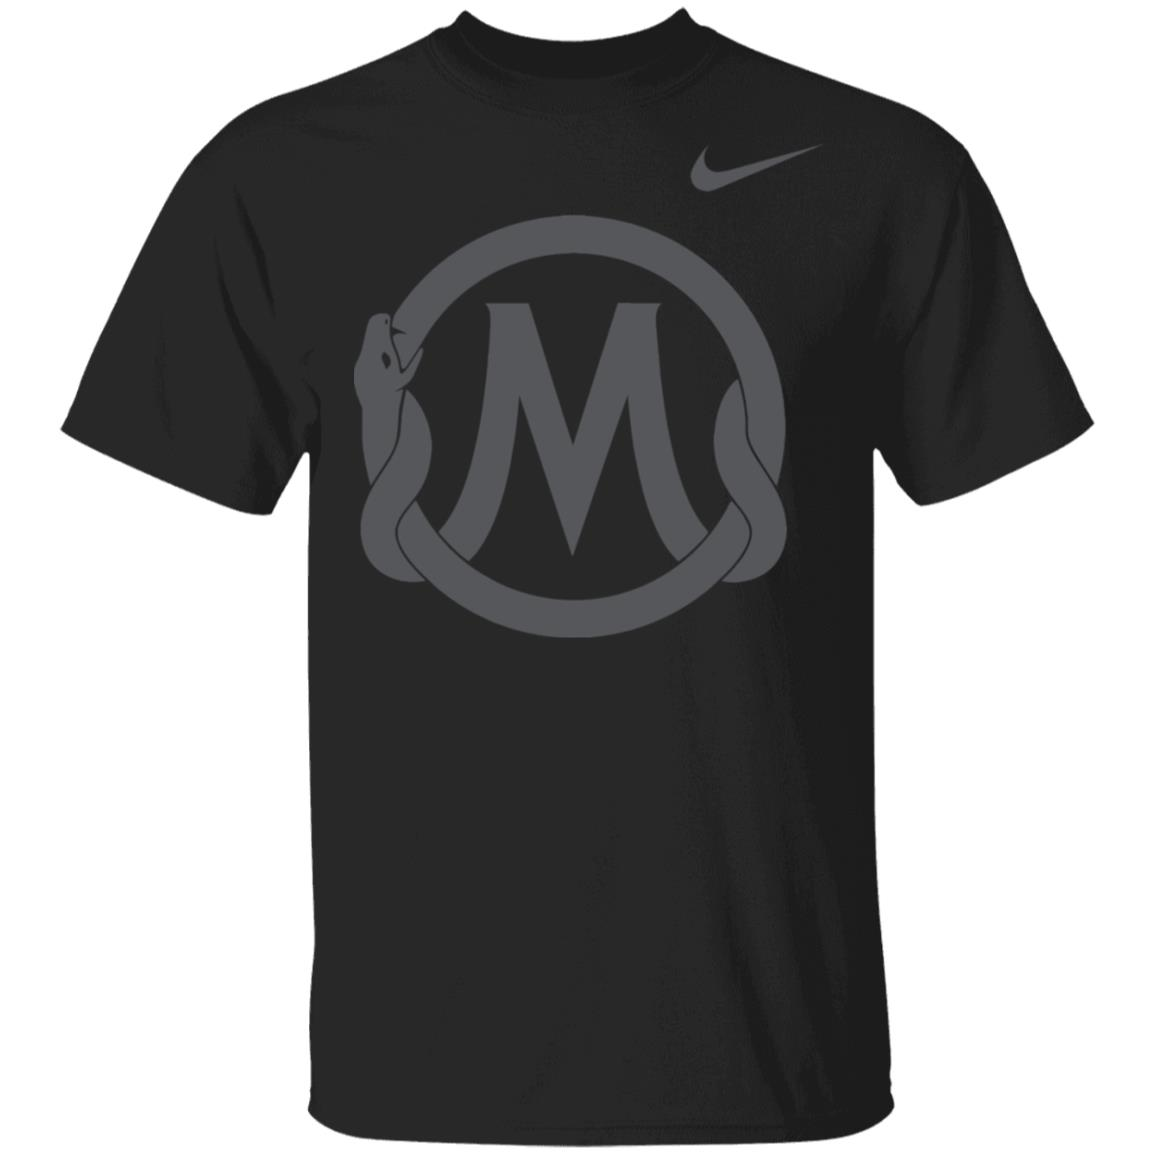 Mamba sports academy legend black t shirt